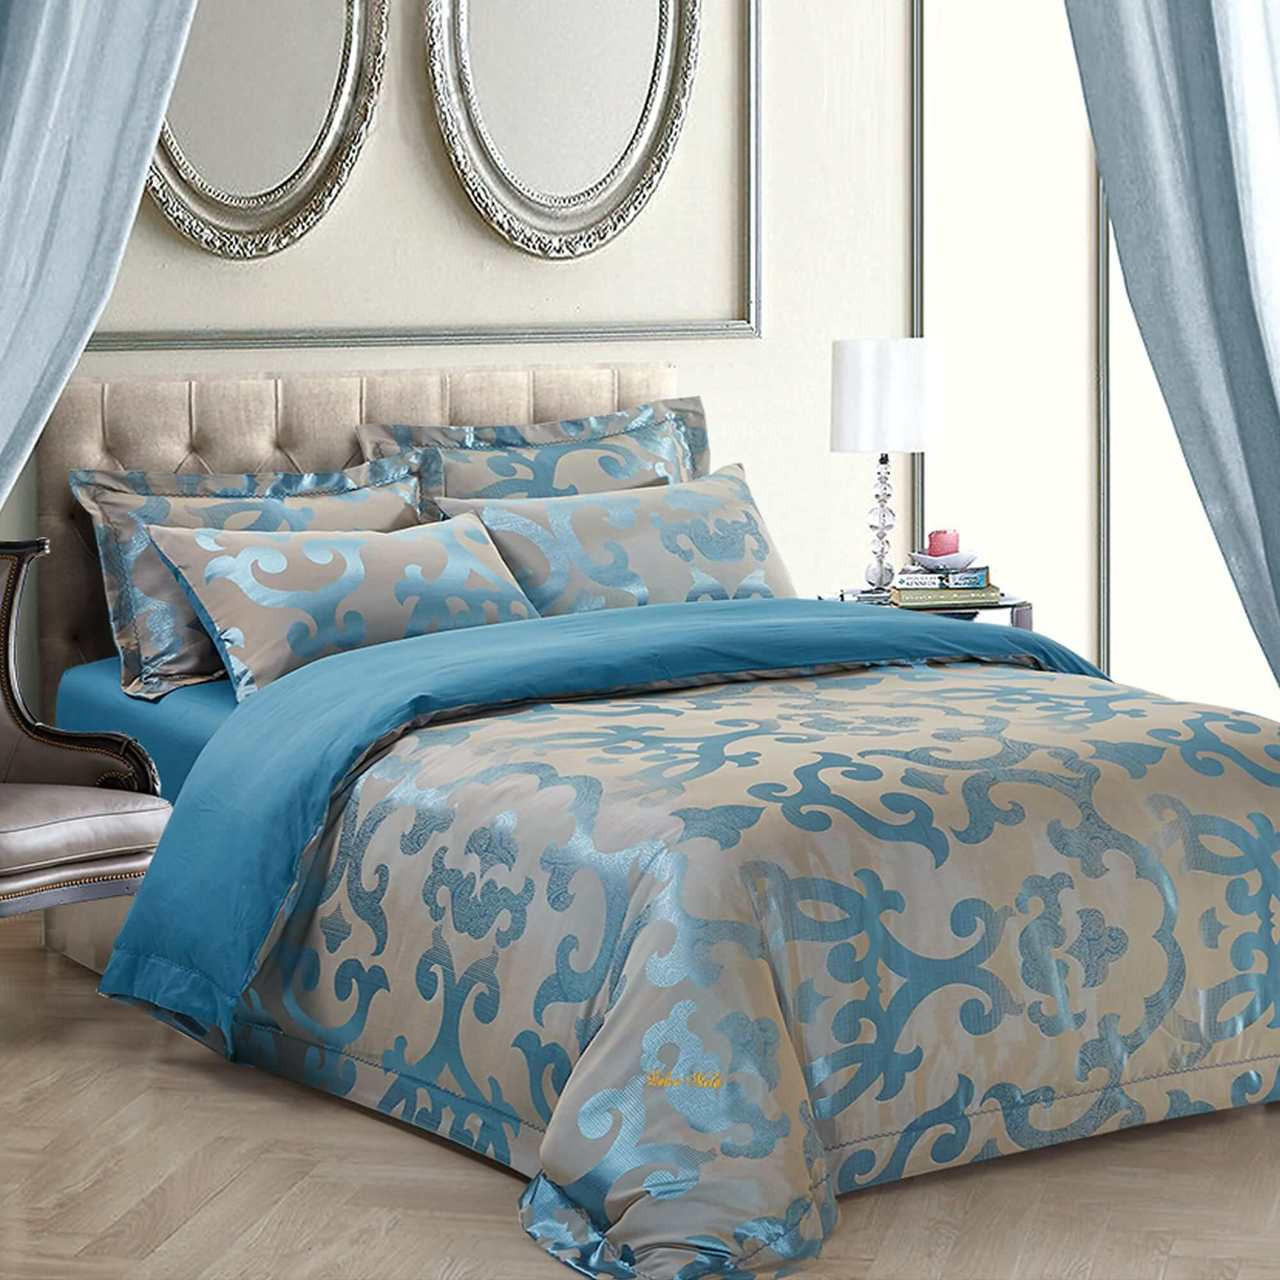 Queen Duvet Cover Set DM513Q